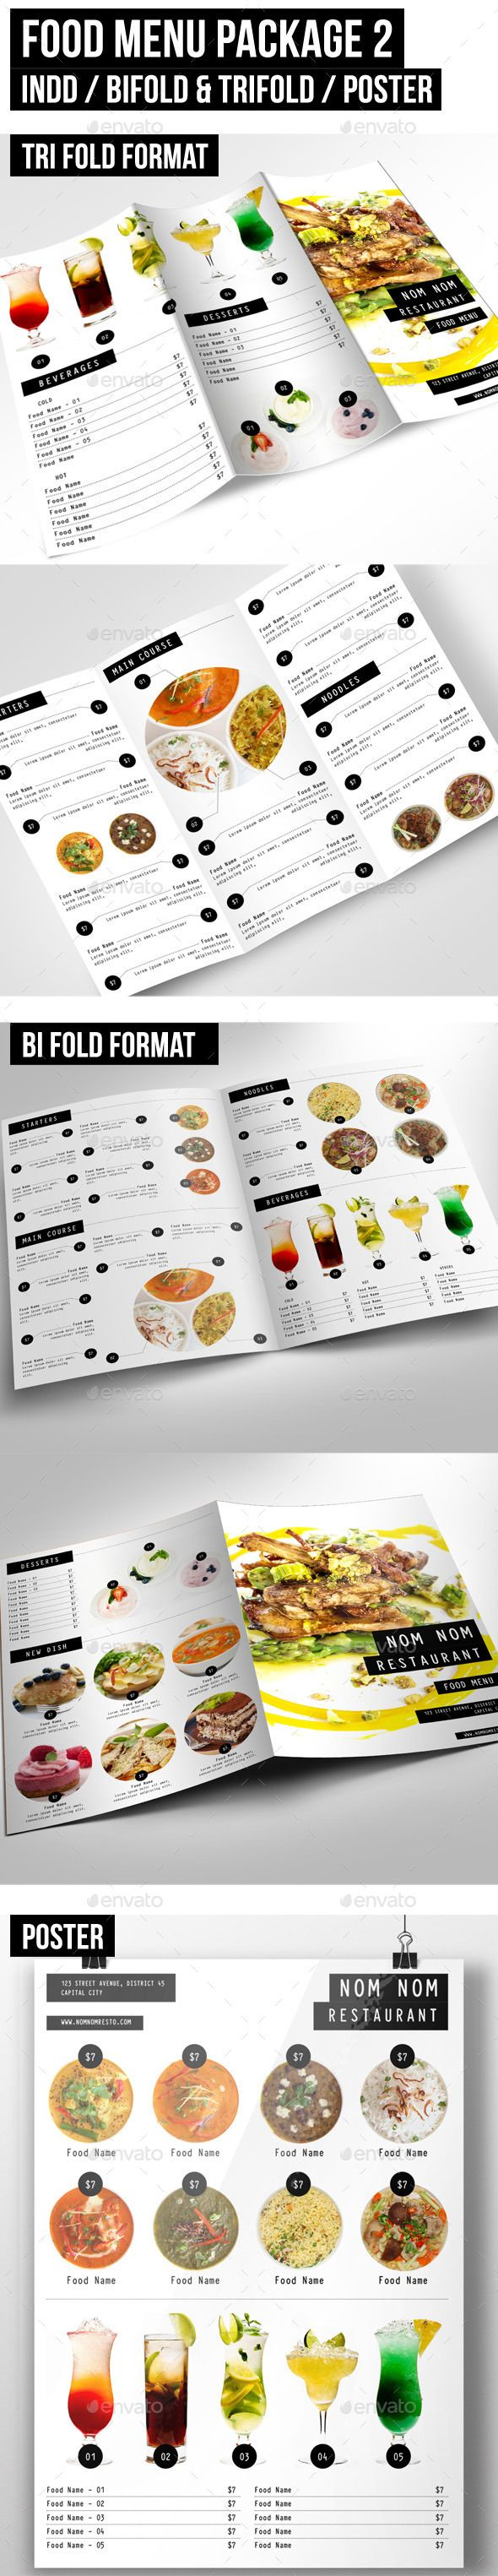 18 best thai menu design images on Pinterest | Menu design, Menu ...